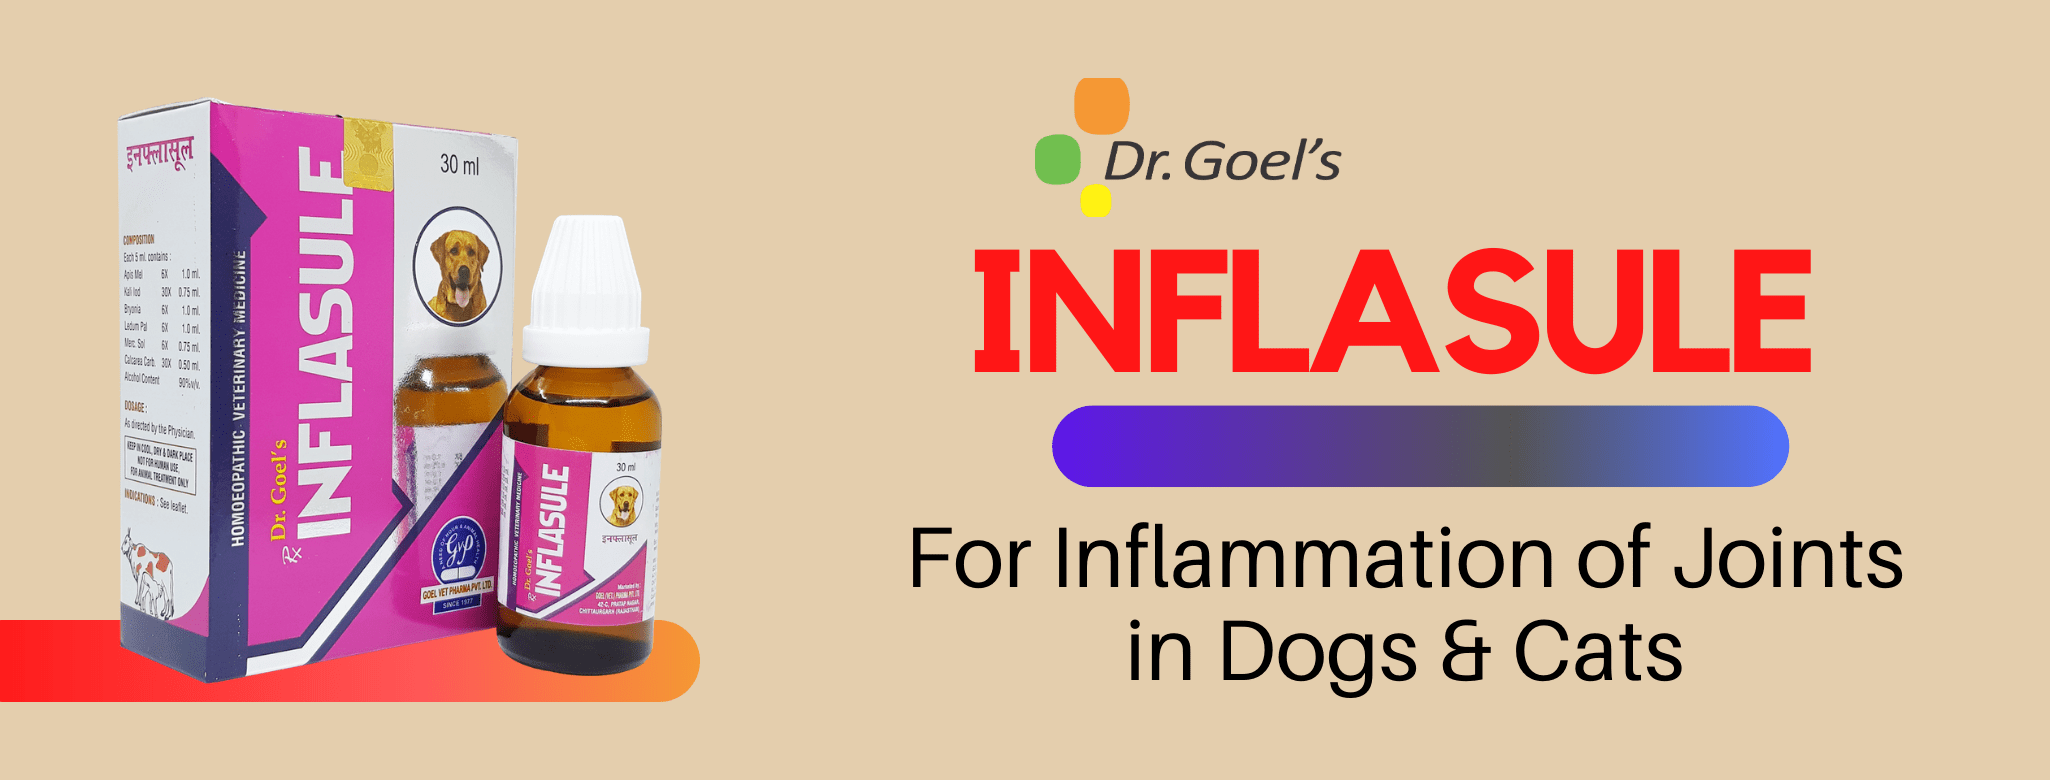 Homeopathic Animal Medicine for Infalmmation